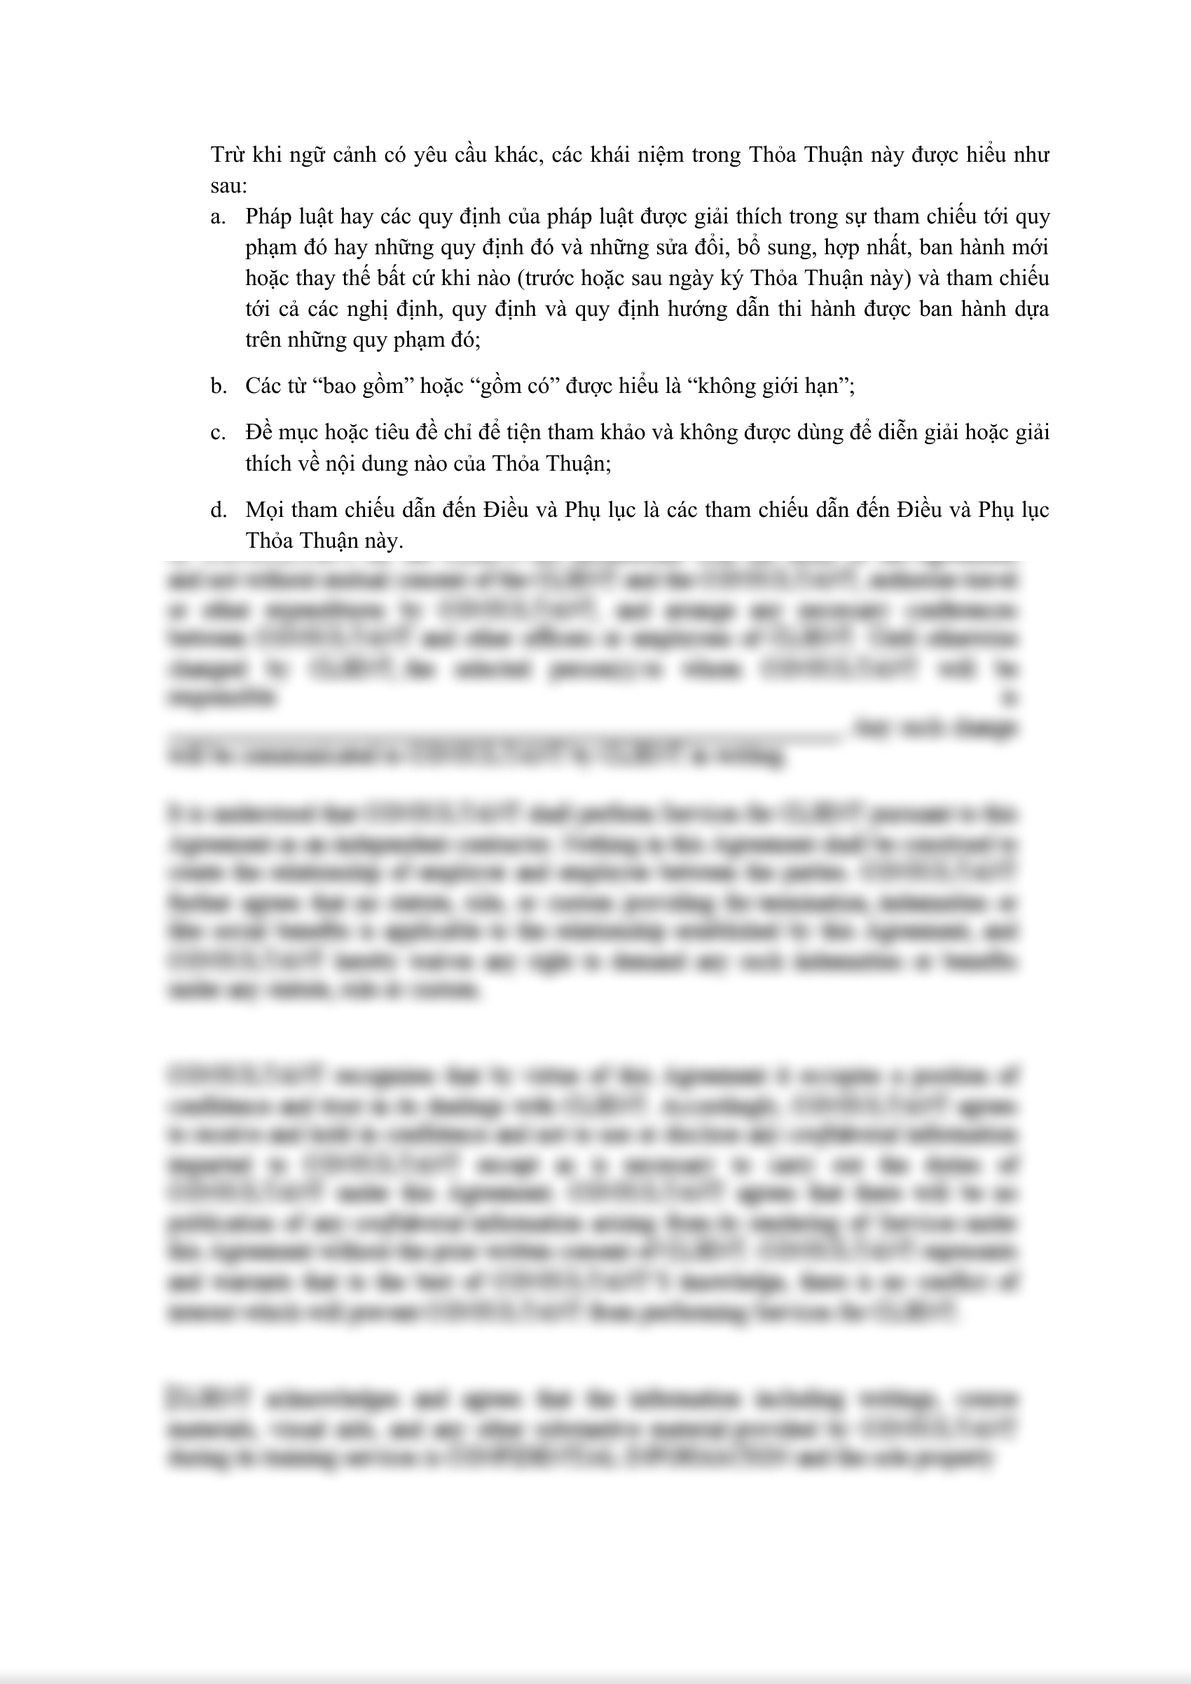 Master project collaboration agreement-3